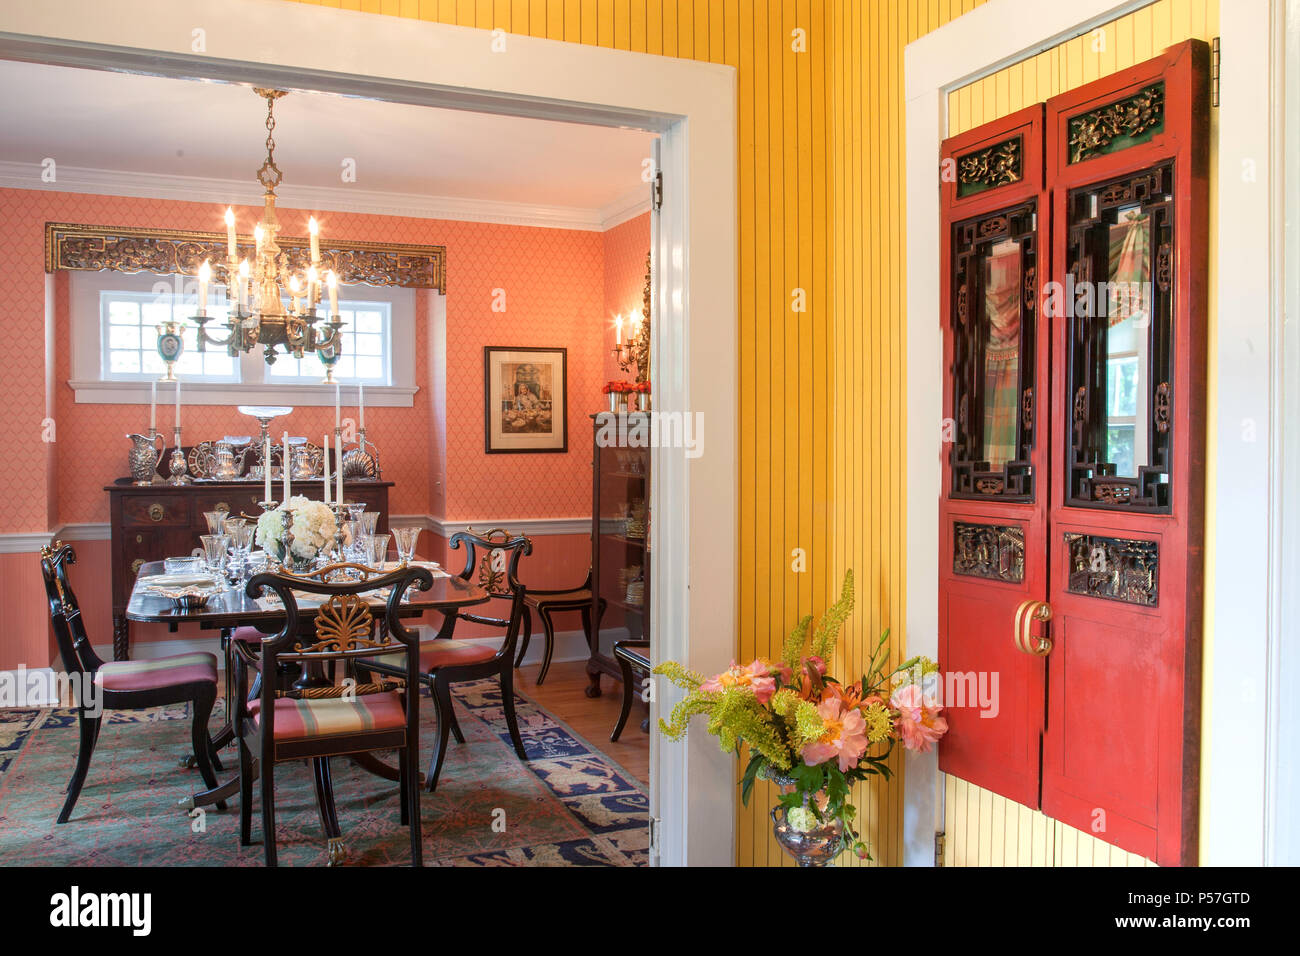 Dining Room And Front Entry Hall In A Brightly Colored Residential Home United States